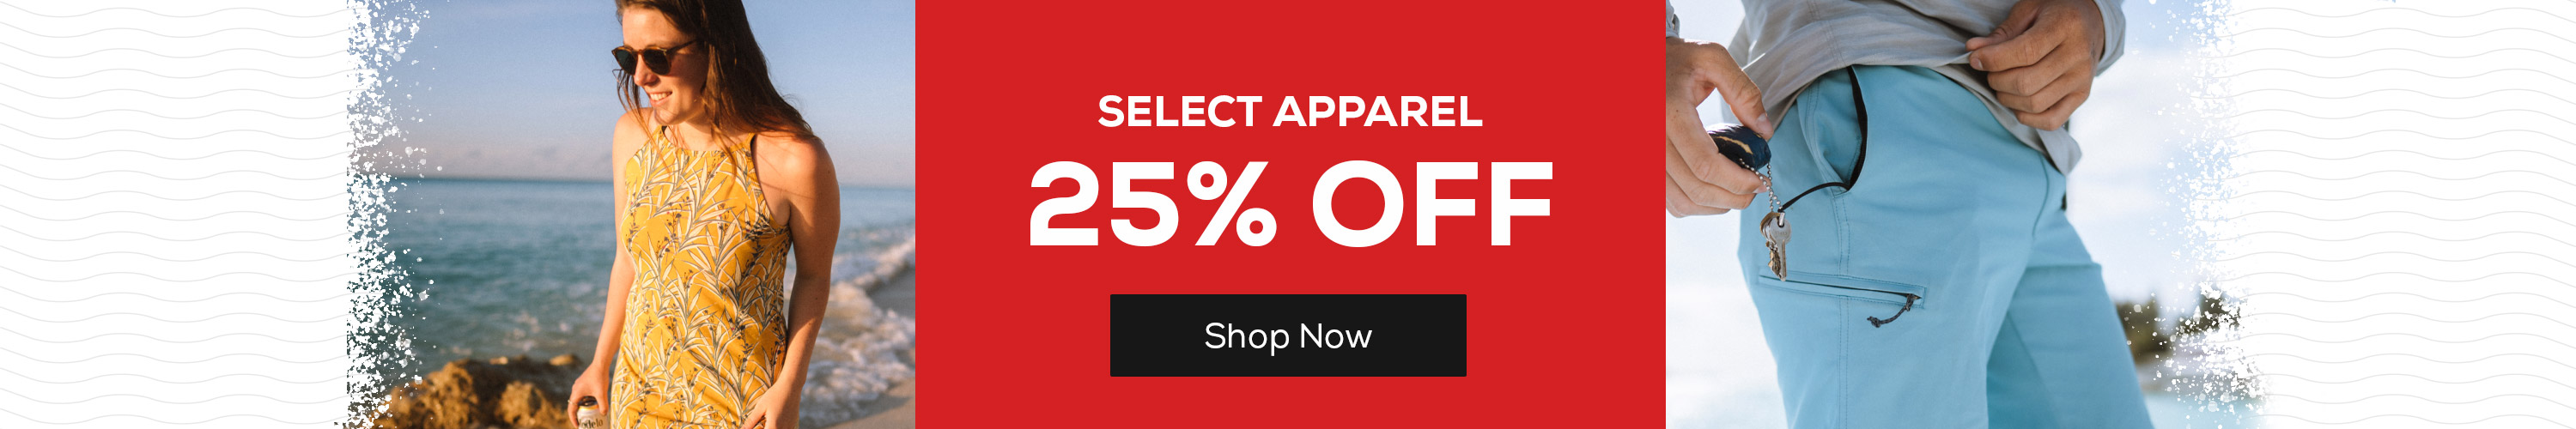 Select Apparel 25% Off